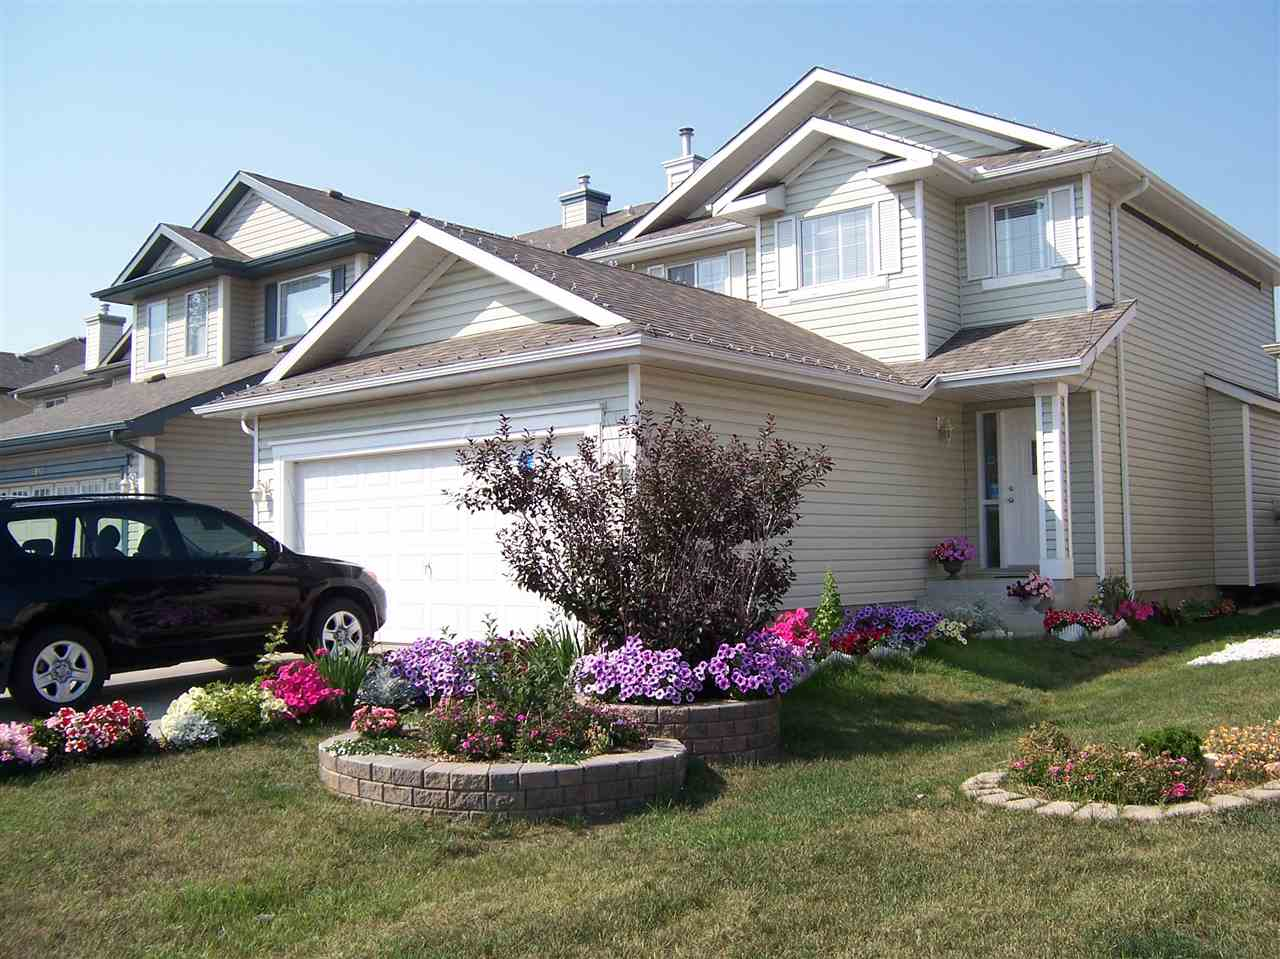 Main Photo: 3591 Mclean Crescent SW in Edmonton: Zone 55 House for sale : MLS(r) # E4058771